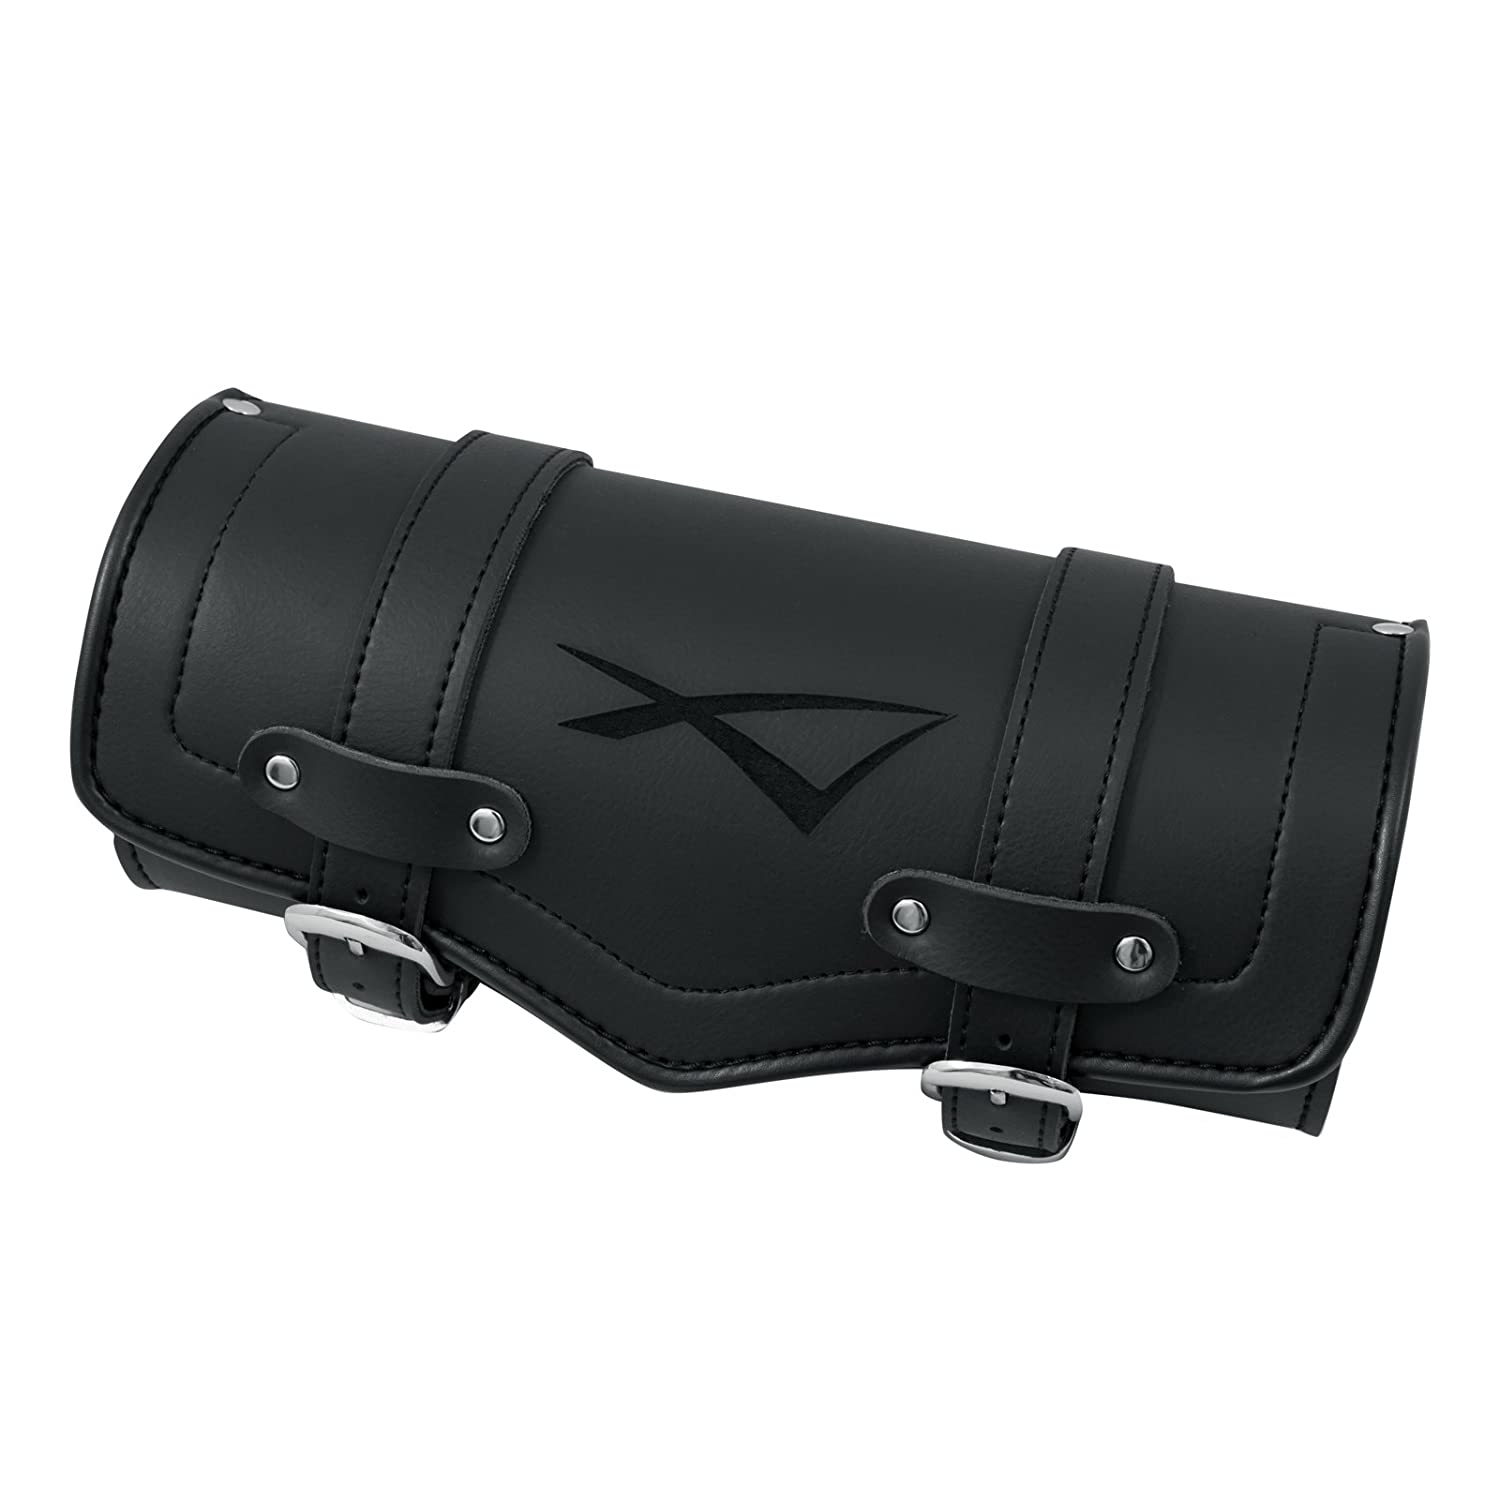 A-Pro A Outil de Pro Roll Bag Saddle Luggage Pannier Davidson Hi Quality Moto Black 5180000034474